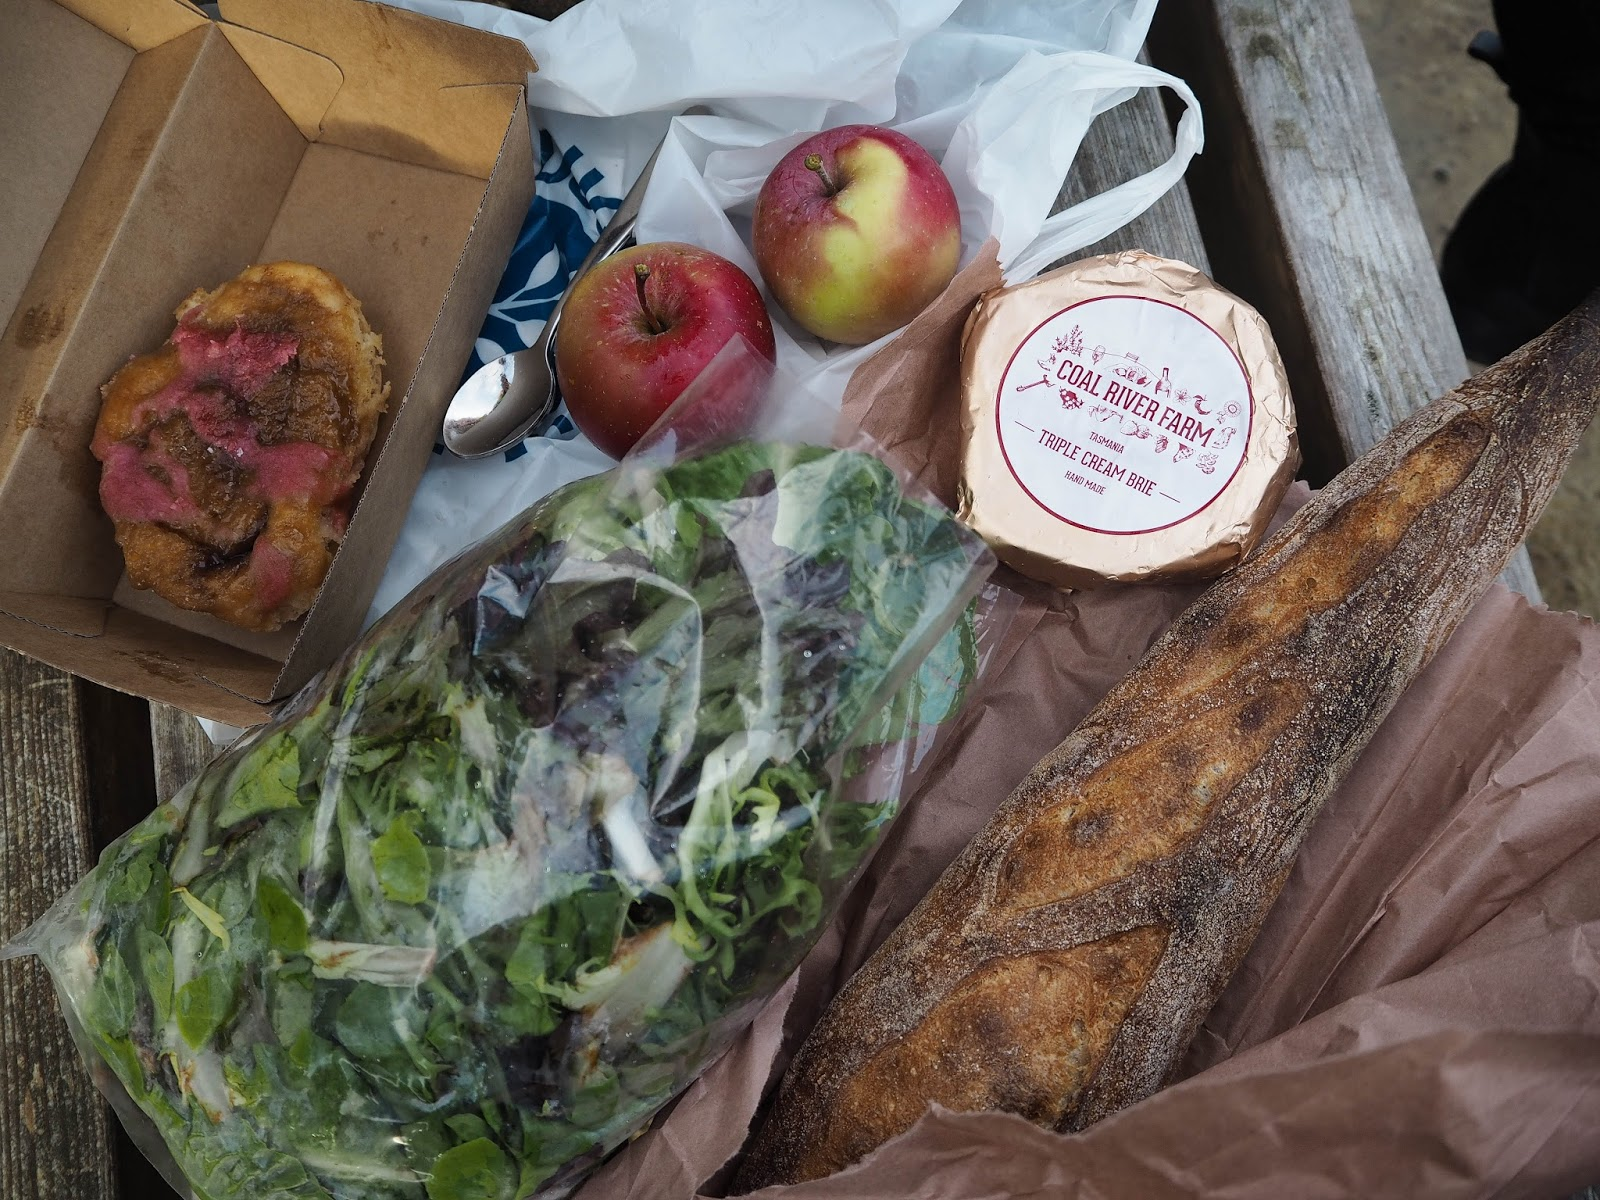 danish pastry, red apples, mixed salad leaves, baguette, brie